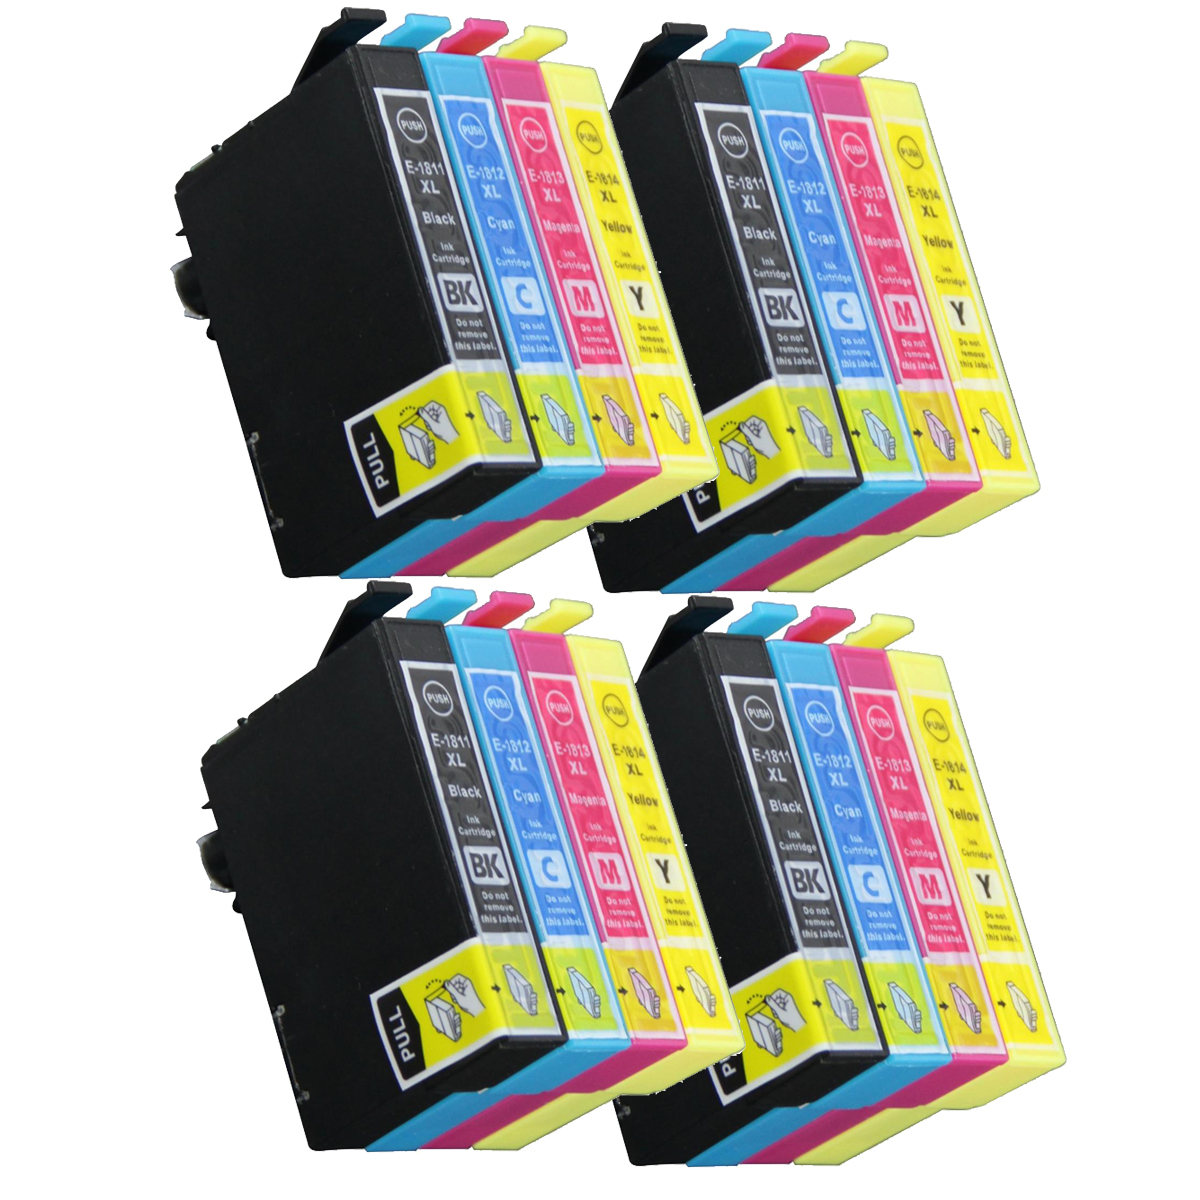 16 ink cartriges T18XL Model T 18XL t1811 t1812 t1813 t1814 Compatible with epson printers XP302 XP305 XP402 XP405